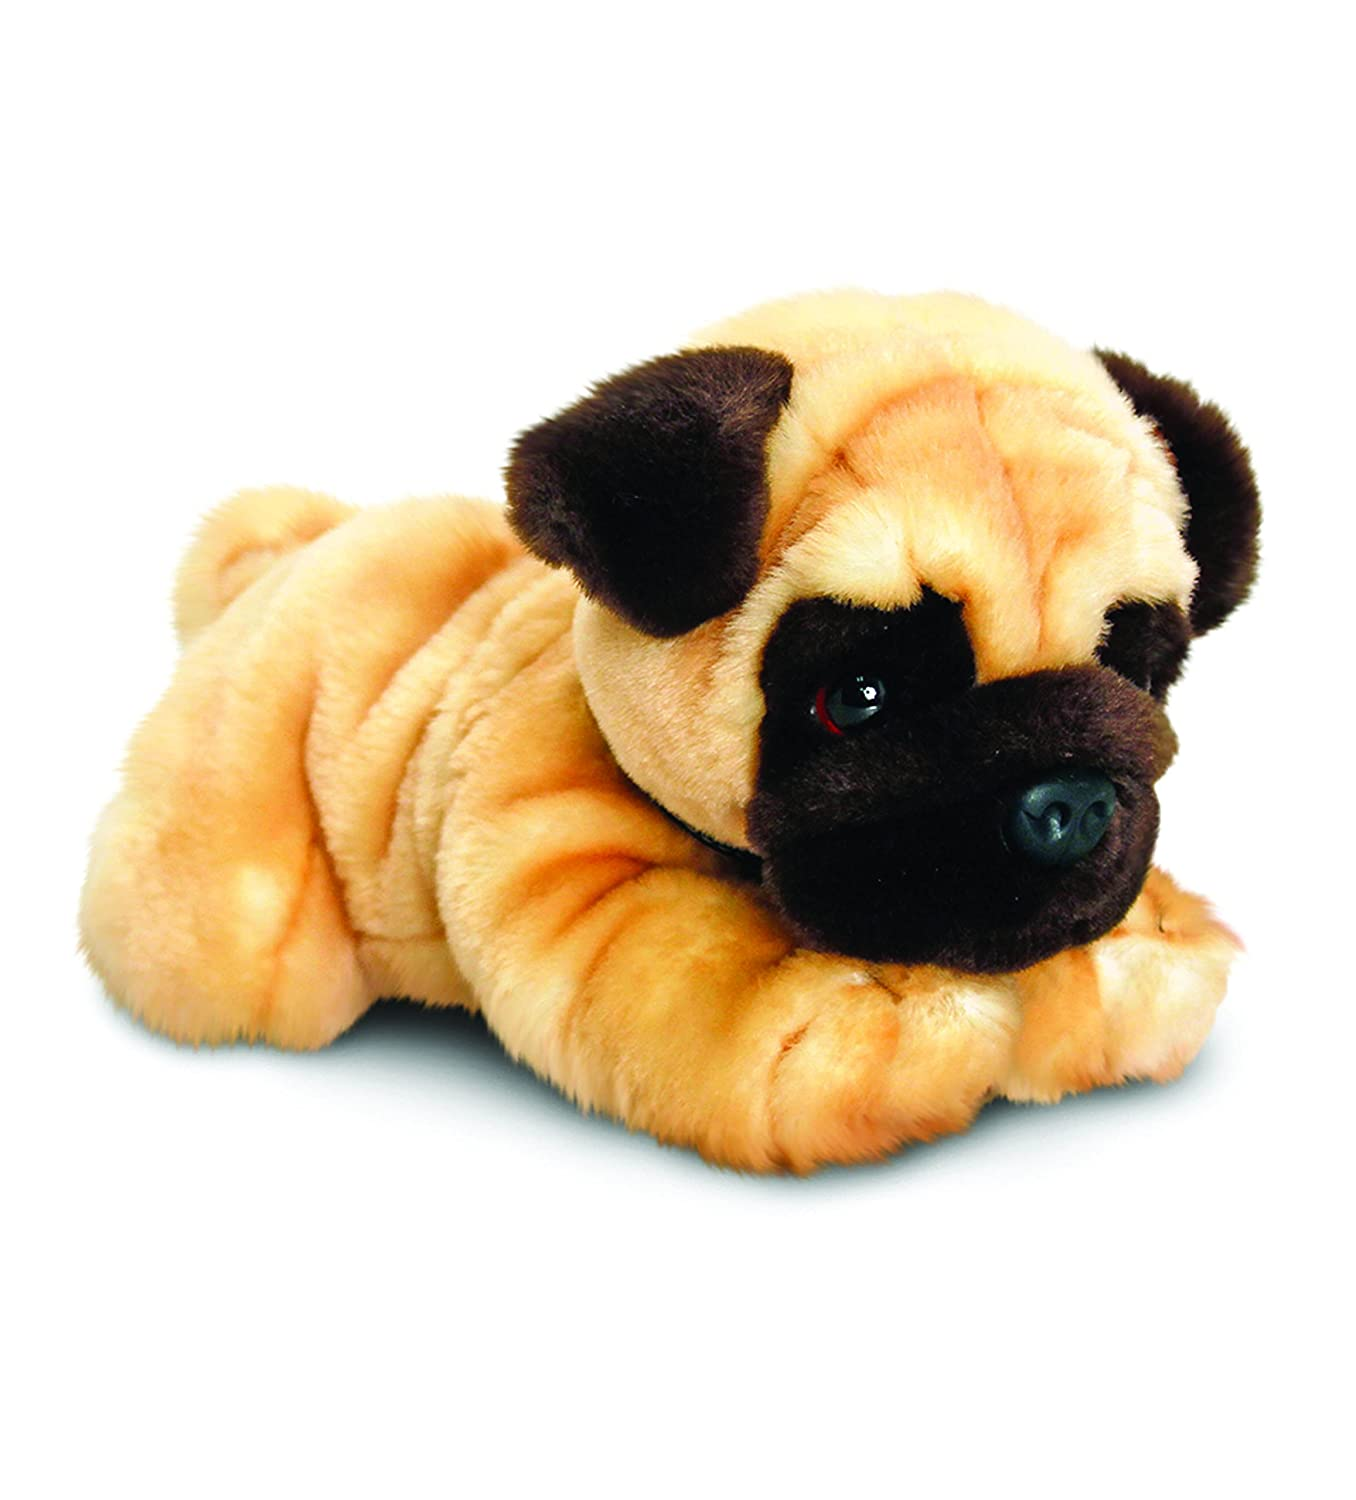 Keel Toys 30 cm Pug Keel Amazon Toys & Games